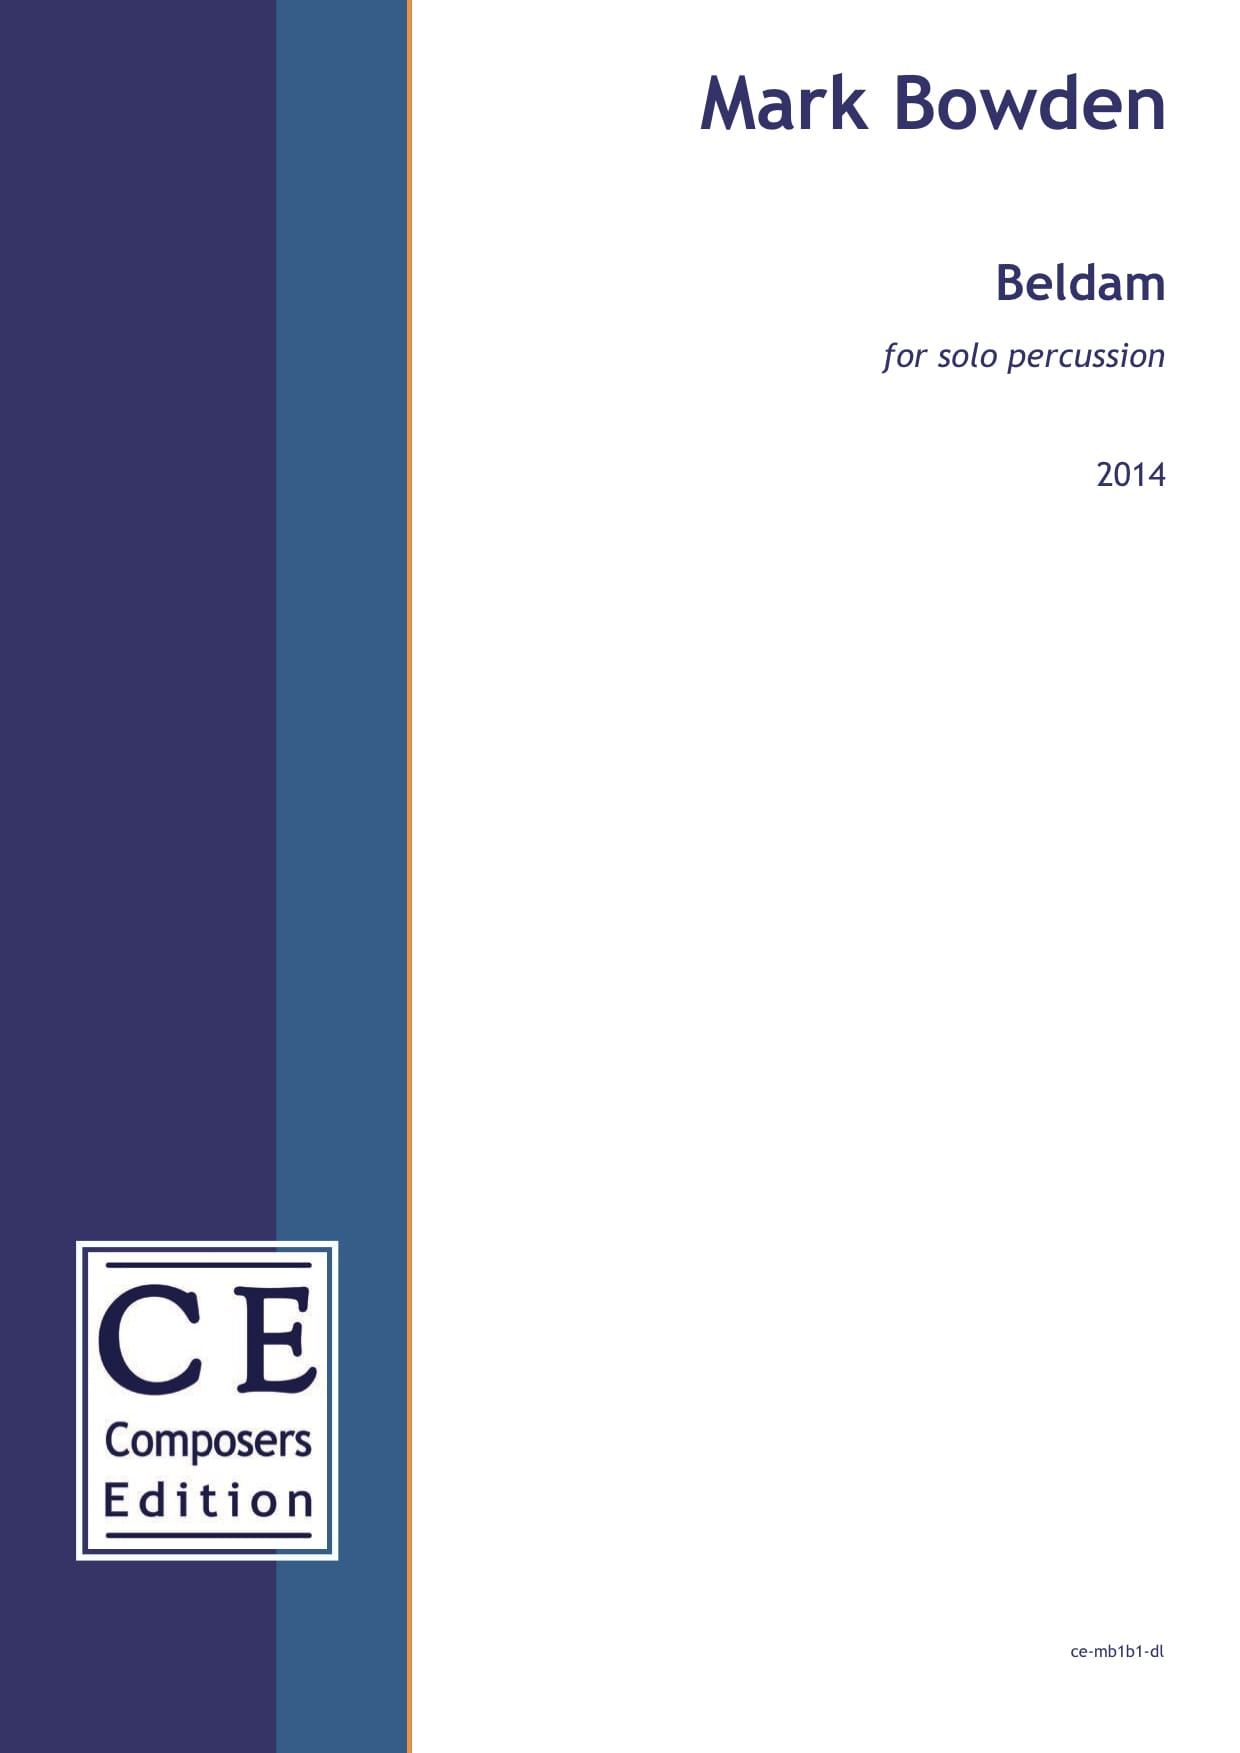 Mark Bowden: Beldam for solo percussion